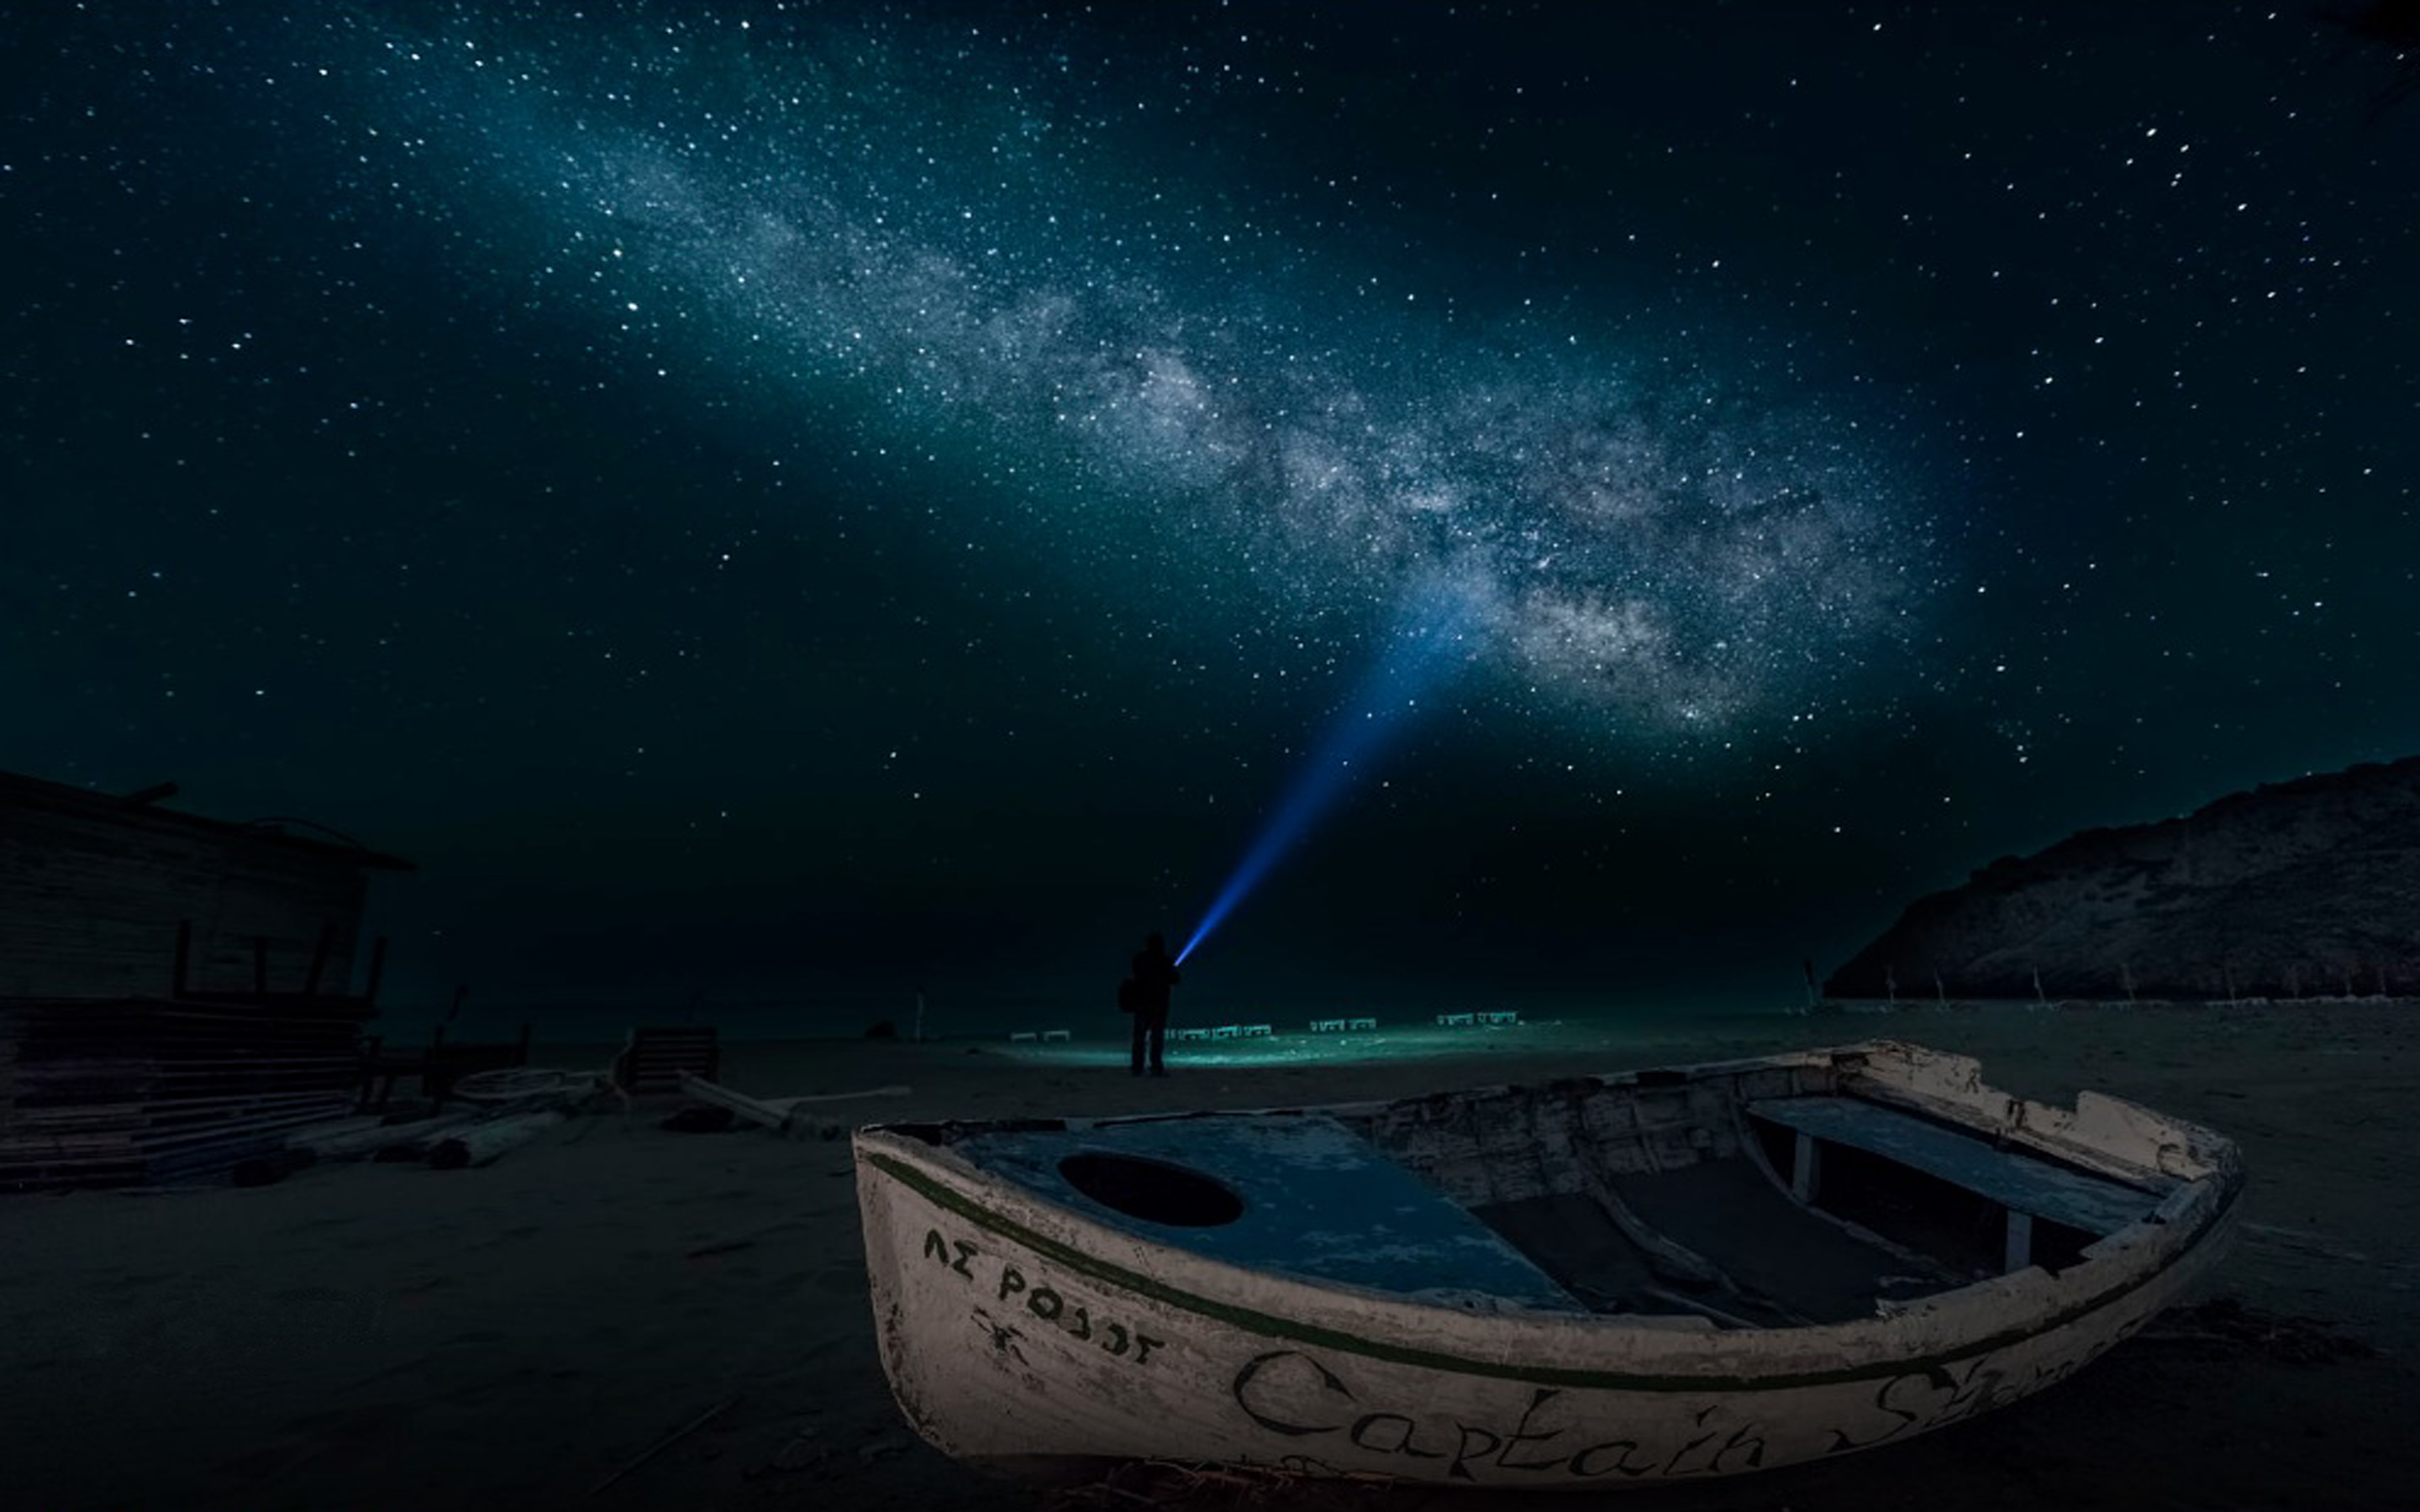 Sandy Beach At Night Time Boat Sky Star Digital Art 2880x1800